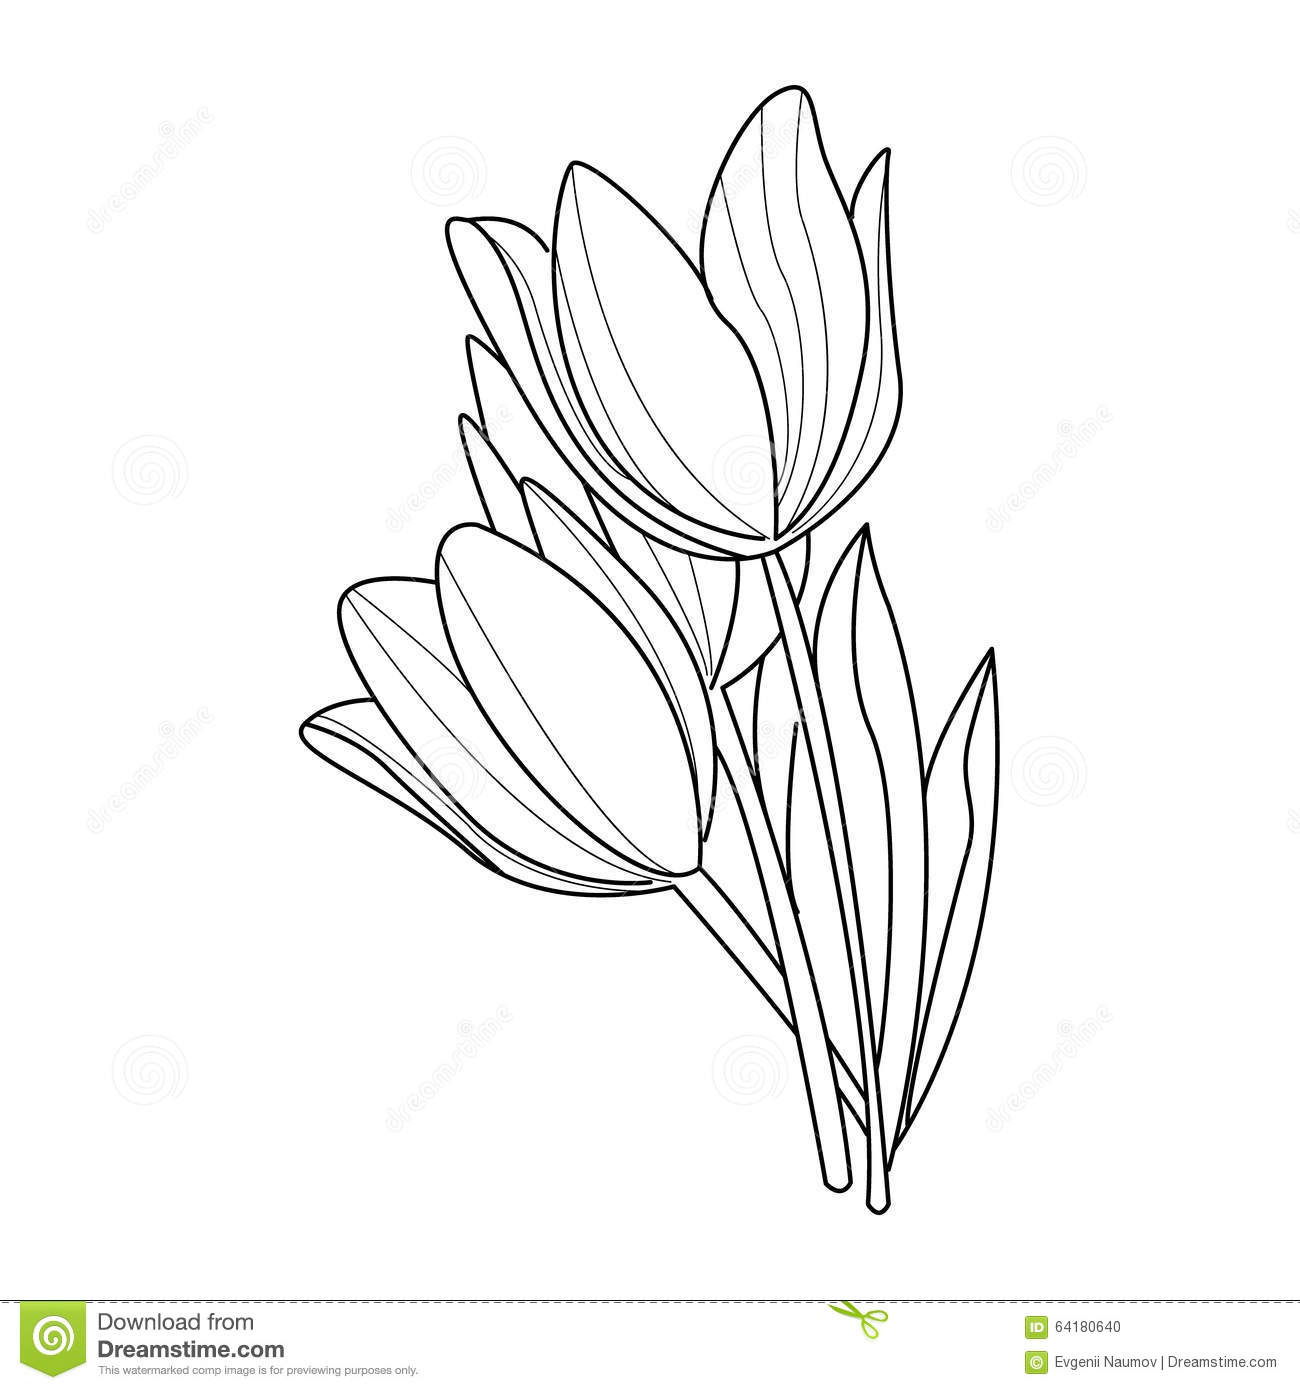 easy tulip drawing easy tulip drawing drawing easy tulip